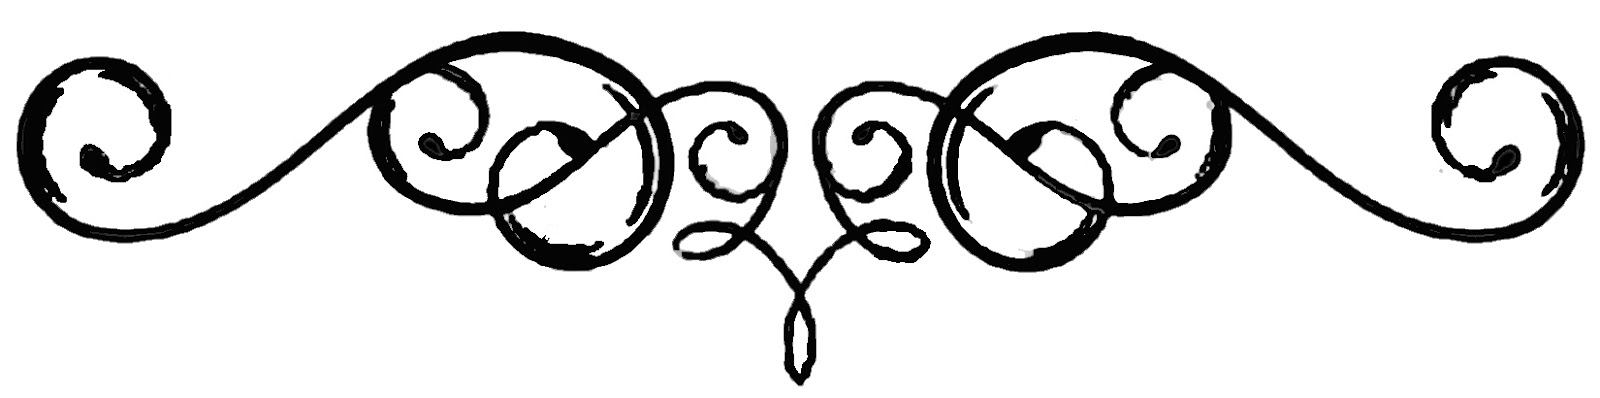 Free Black Scroll Cliparts, Download Free Clip Art, Free Clip Art on.